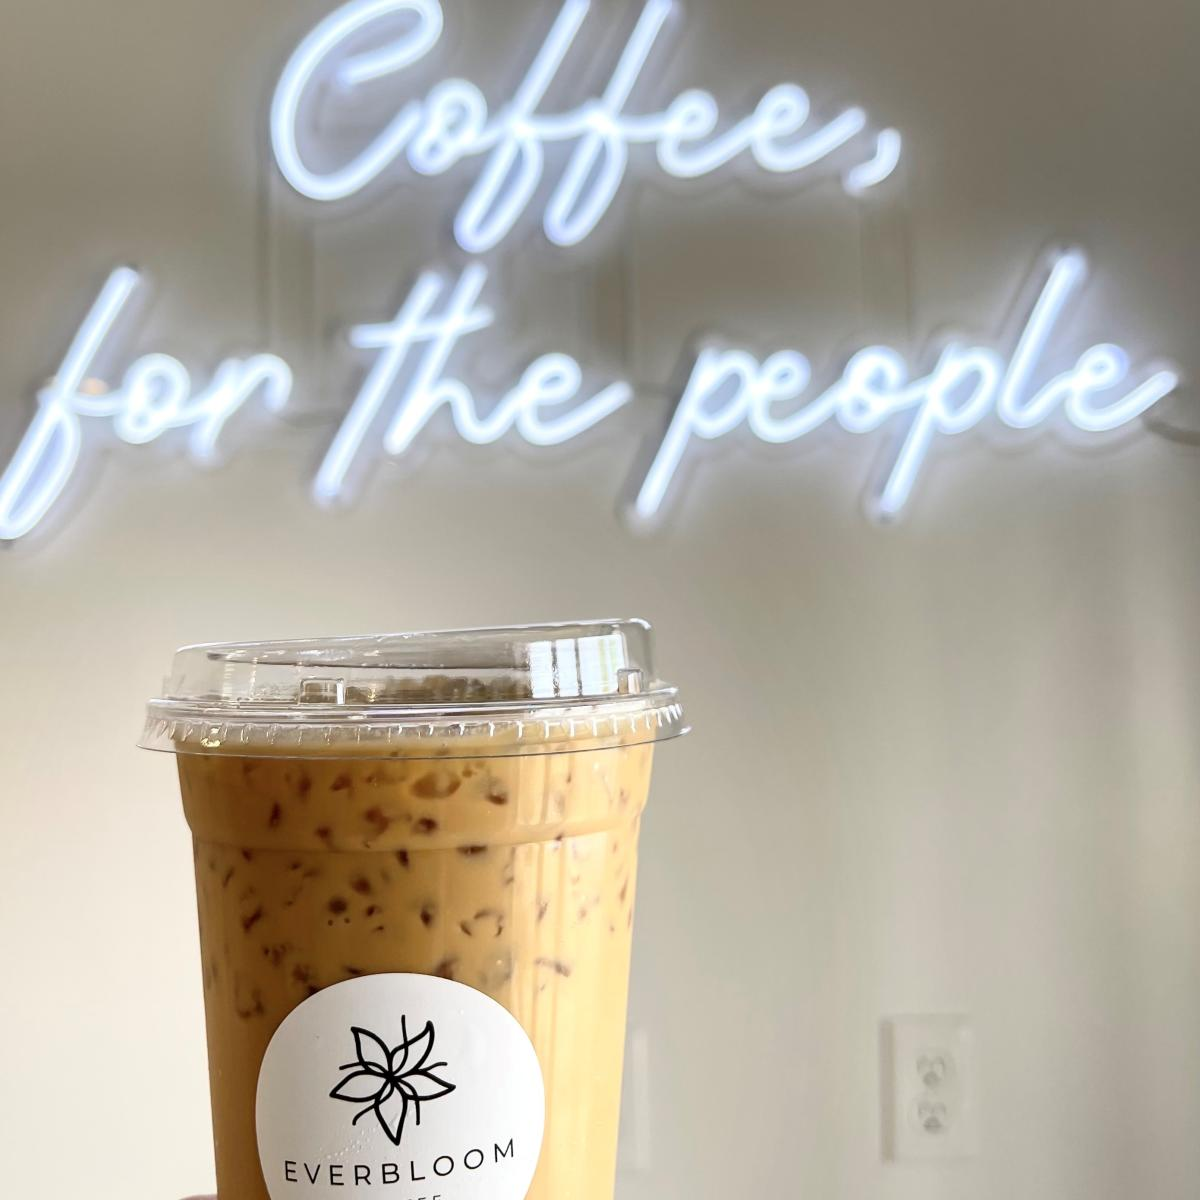 Everbloom Coffee with 'Coffee for the people' sign